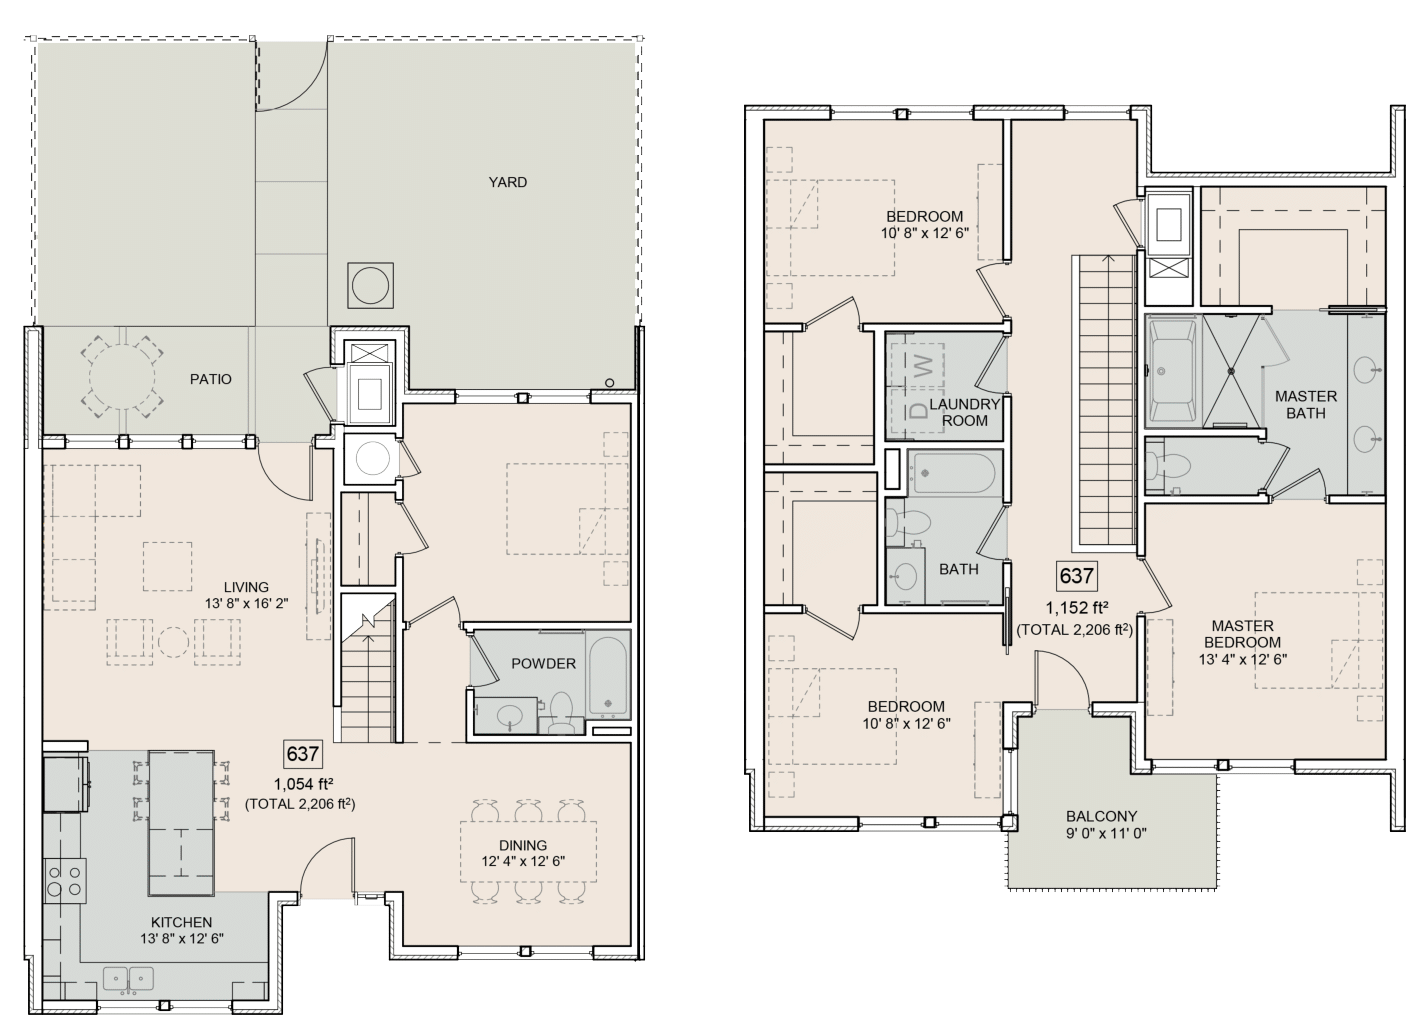 A Beverly unit with 4 Bedrooms and 3 Bathrooms with area of 2206 sq. ft